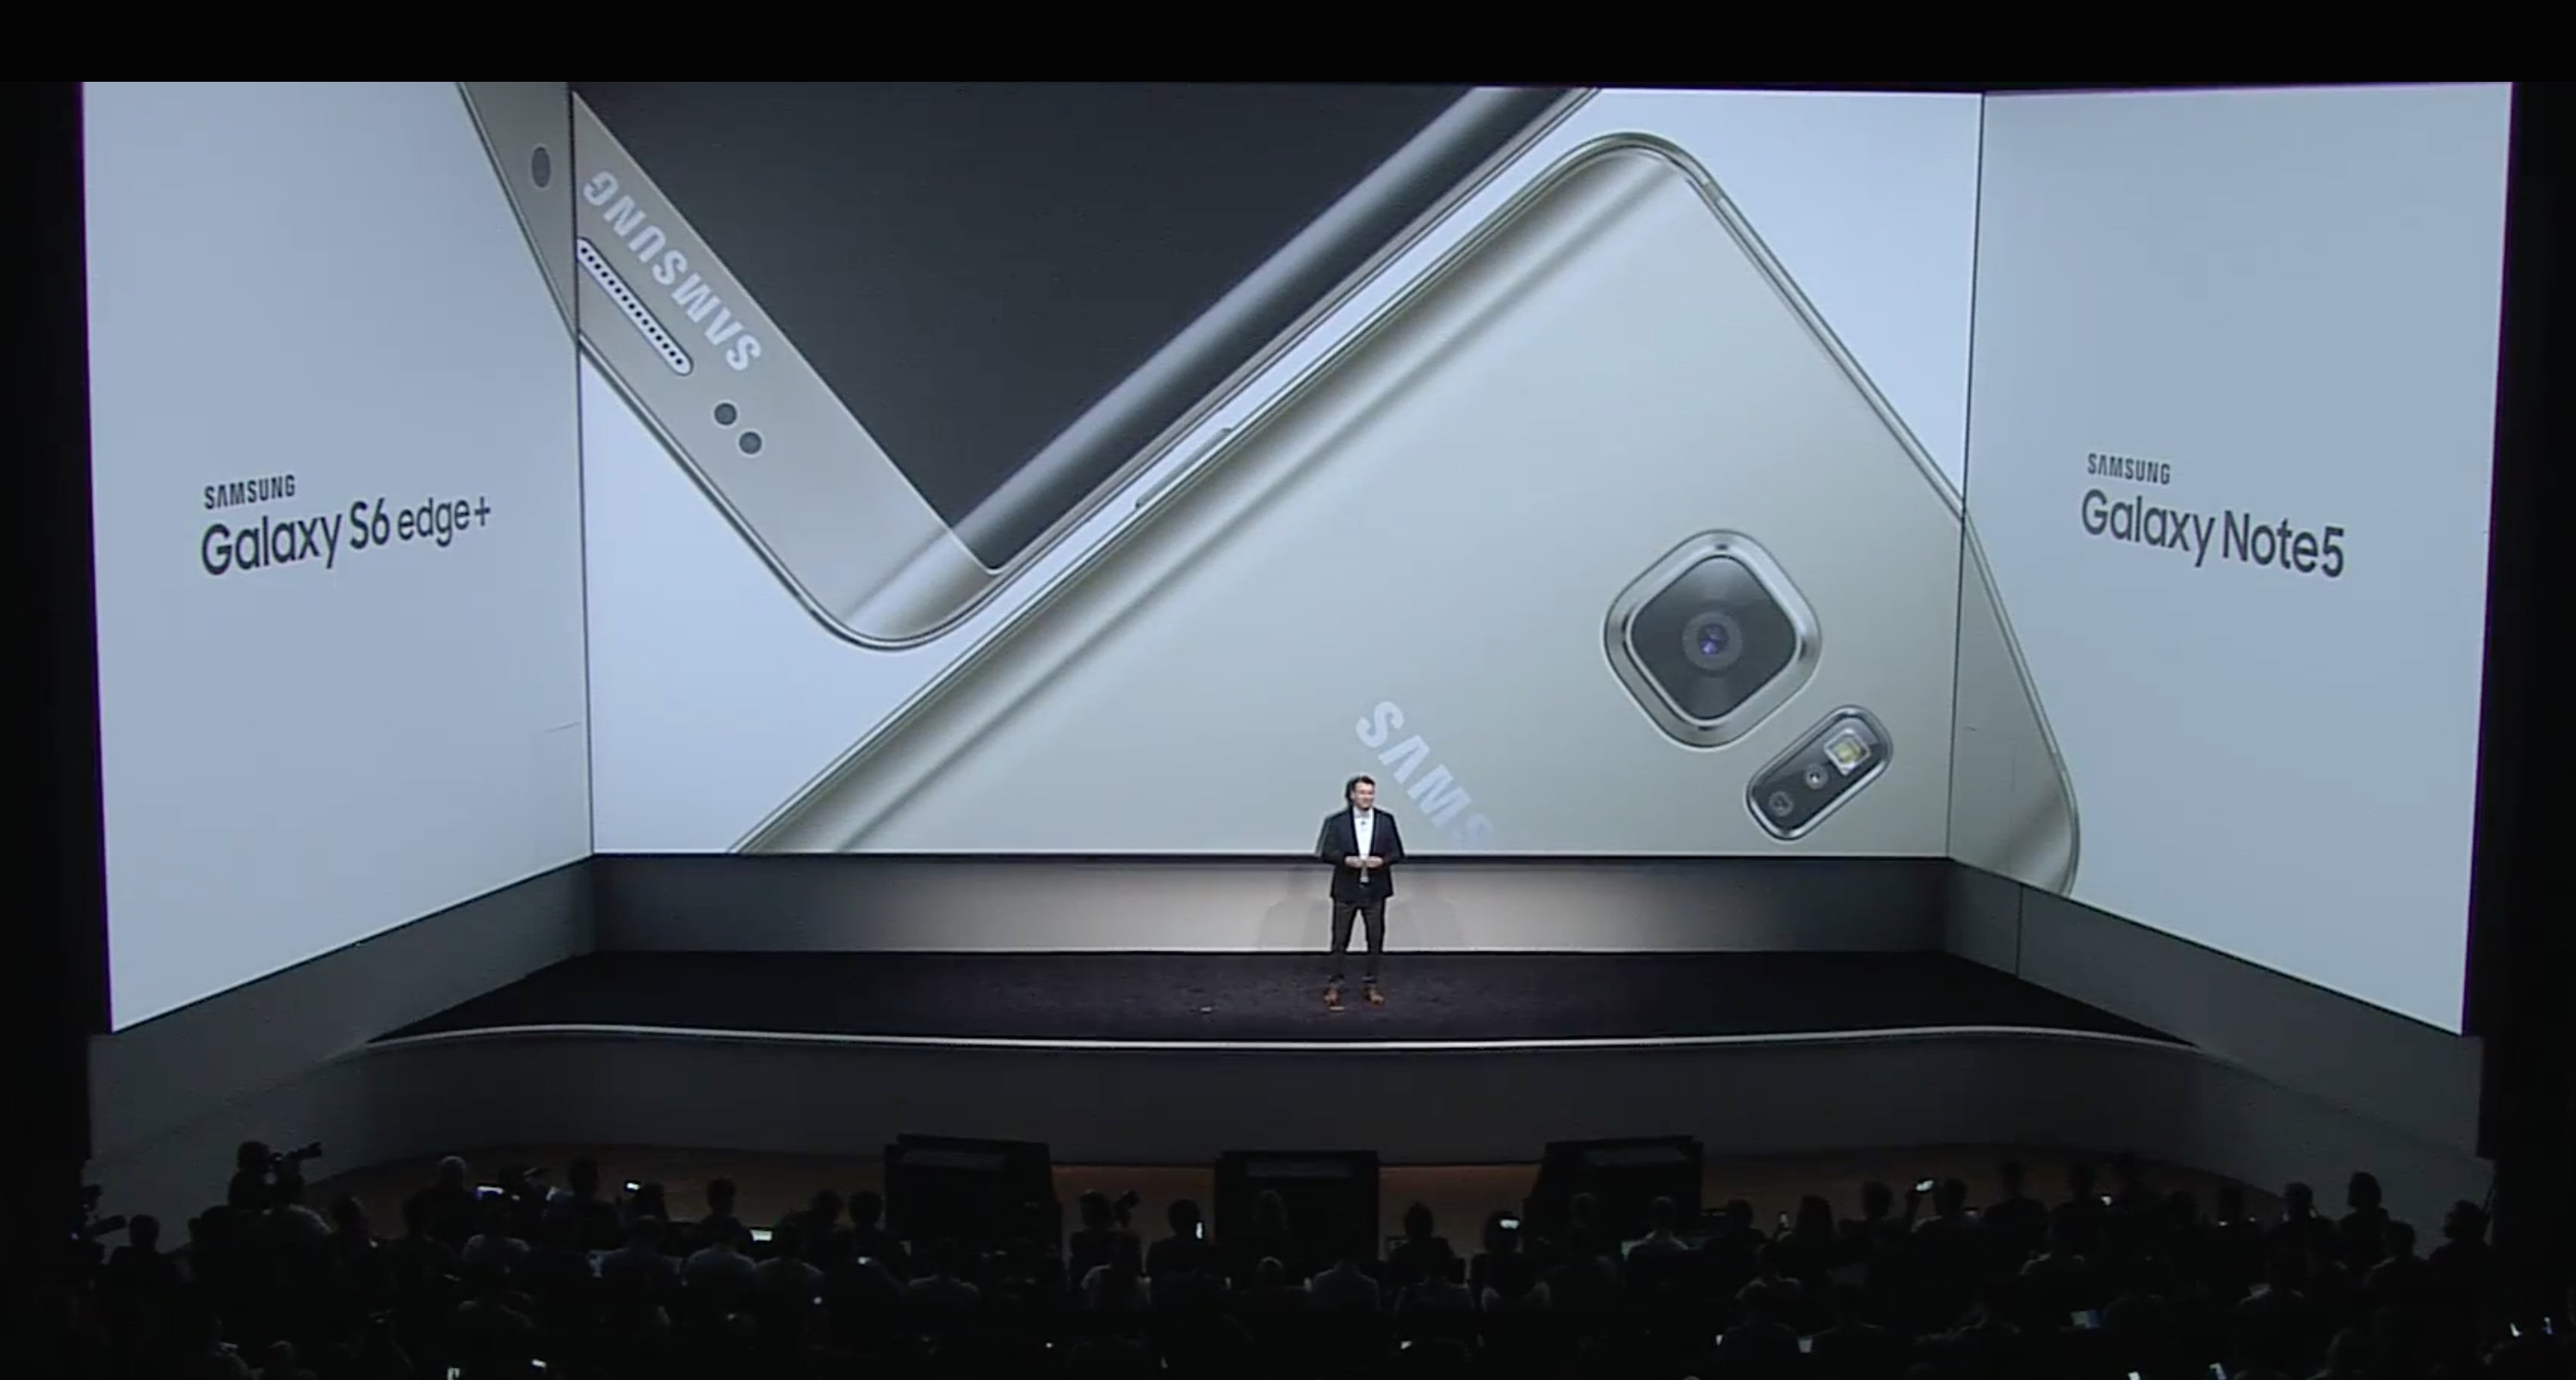 Galaxy Unpacked 2015 - Note 5 and S6 edge plus - Samsung